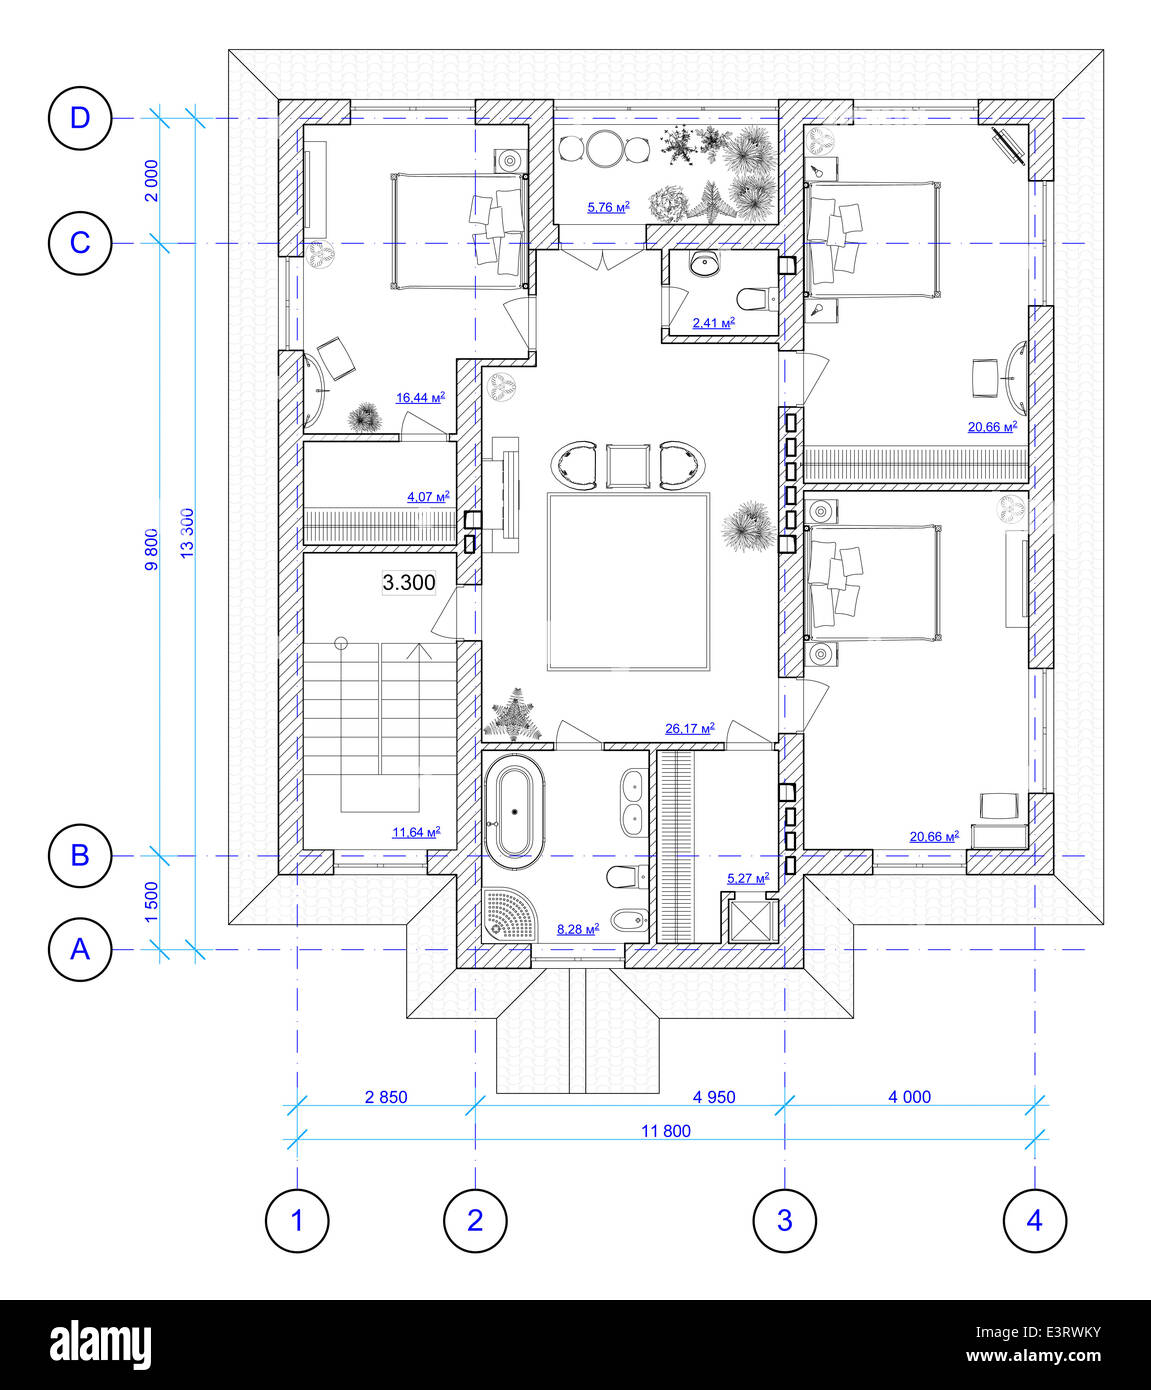 Build house draw blueprint stock photos build house draw blueprint architectural blueprint of second floor of house stock image malvernweather Choice Image